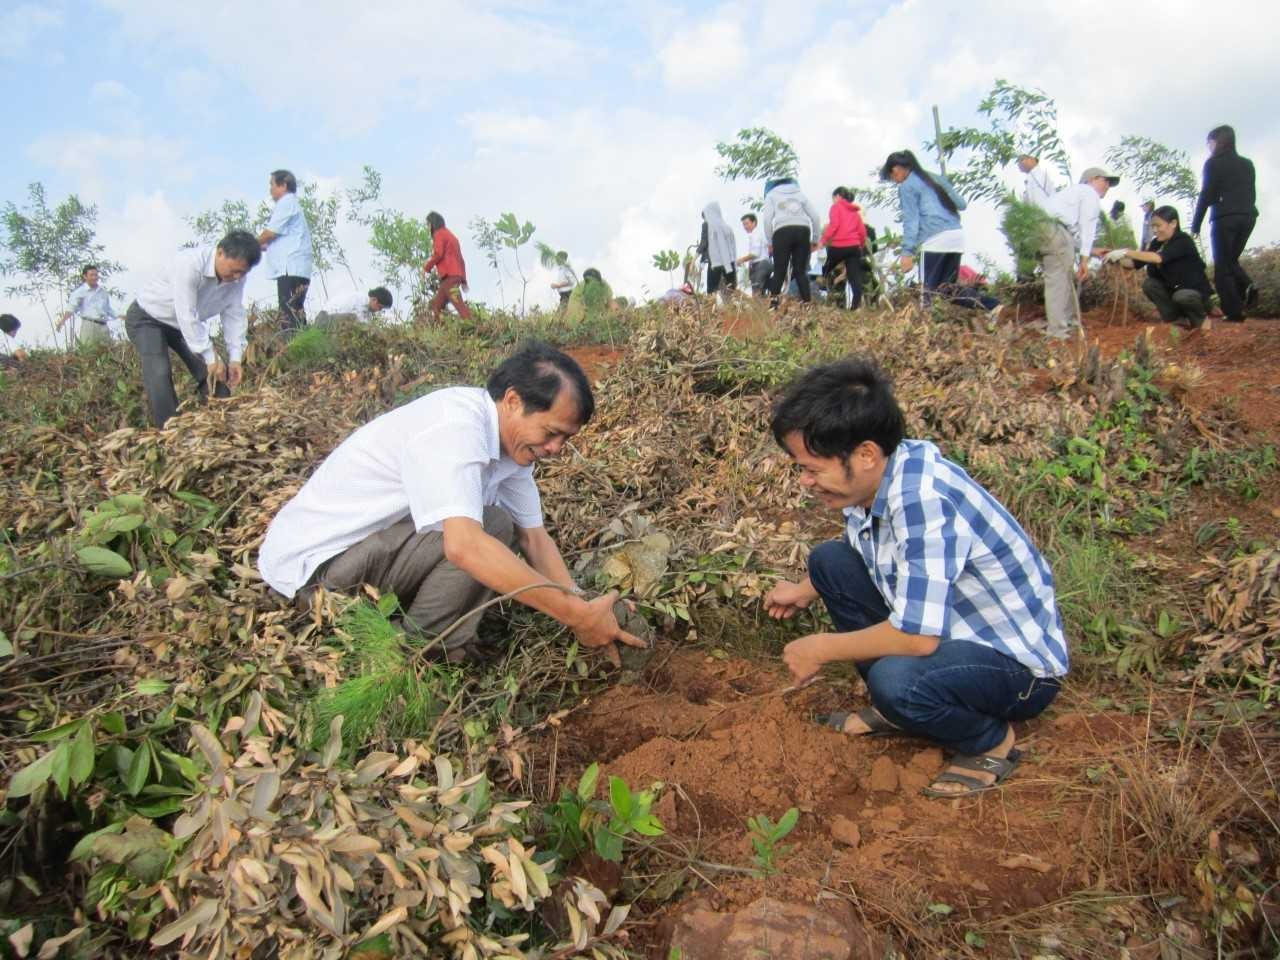 Two participants are planting pine in the bare hill